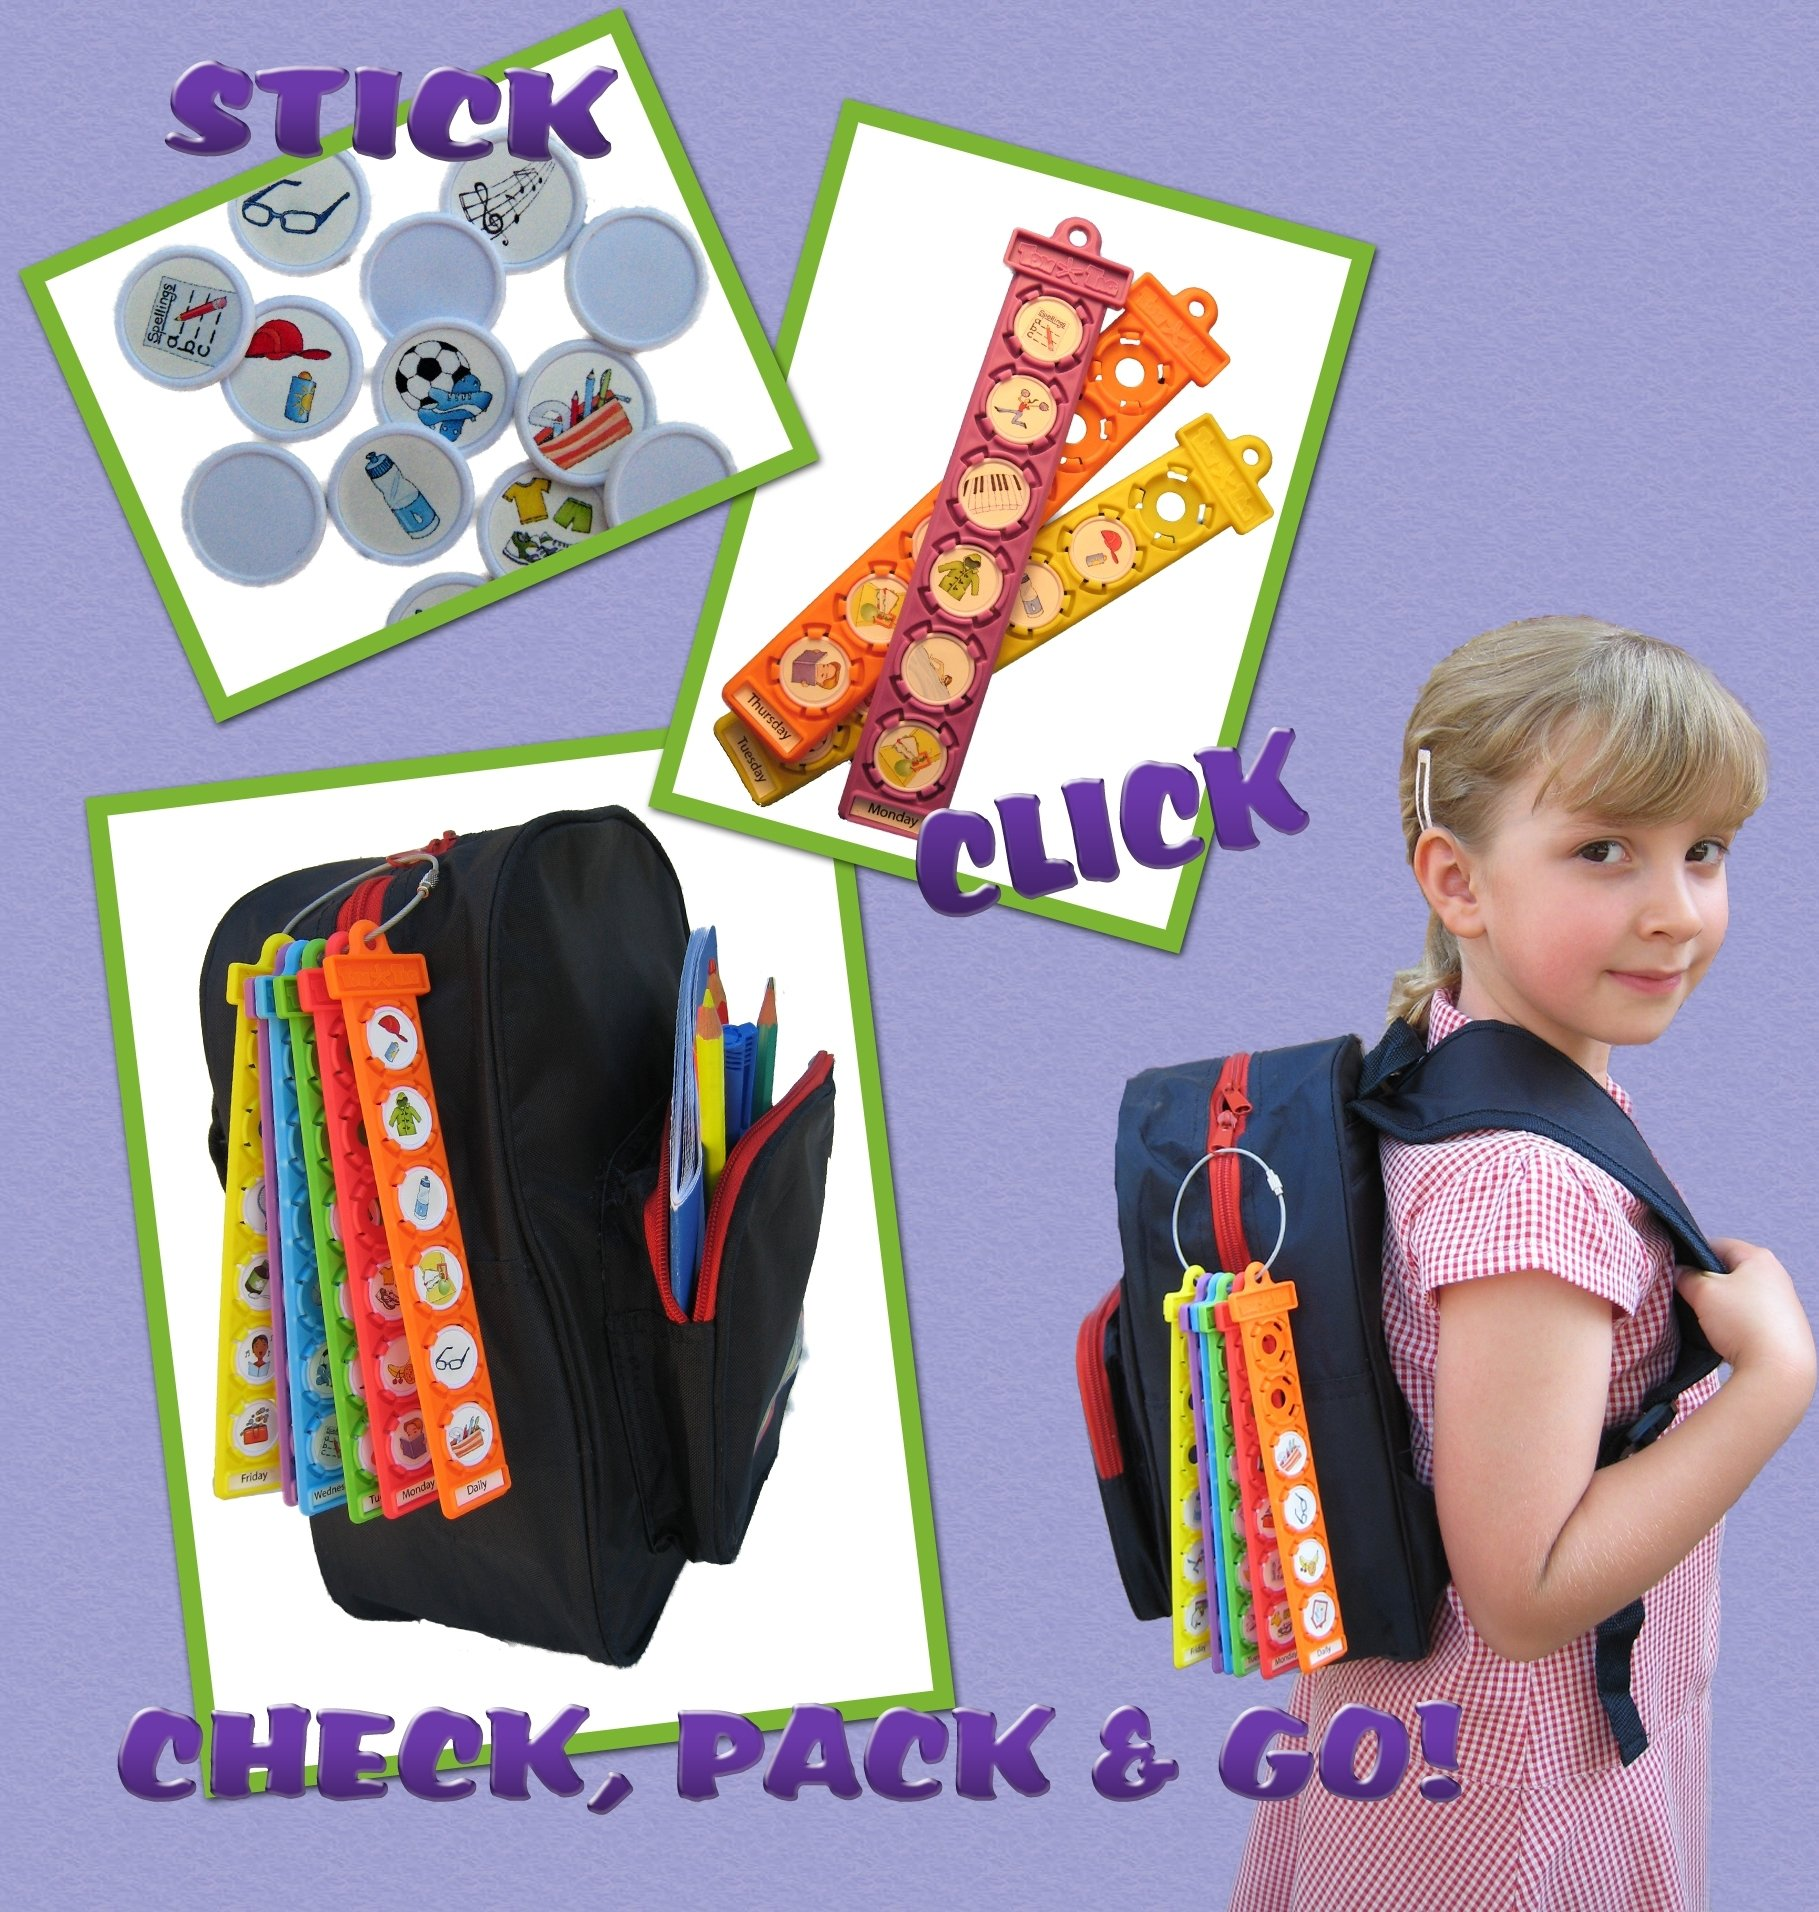 10 Attractive Kid Invention Ideas For School new tool that helps kids pack their bag for school 1 2021